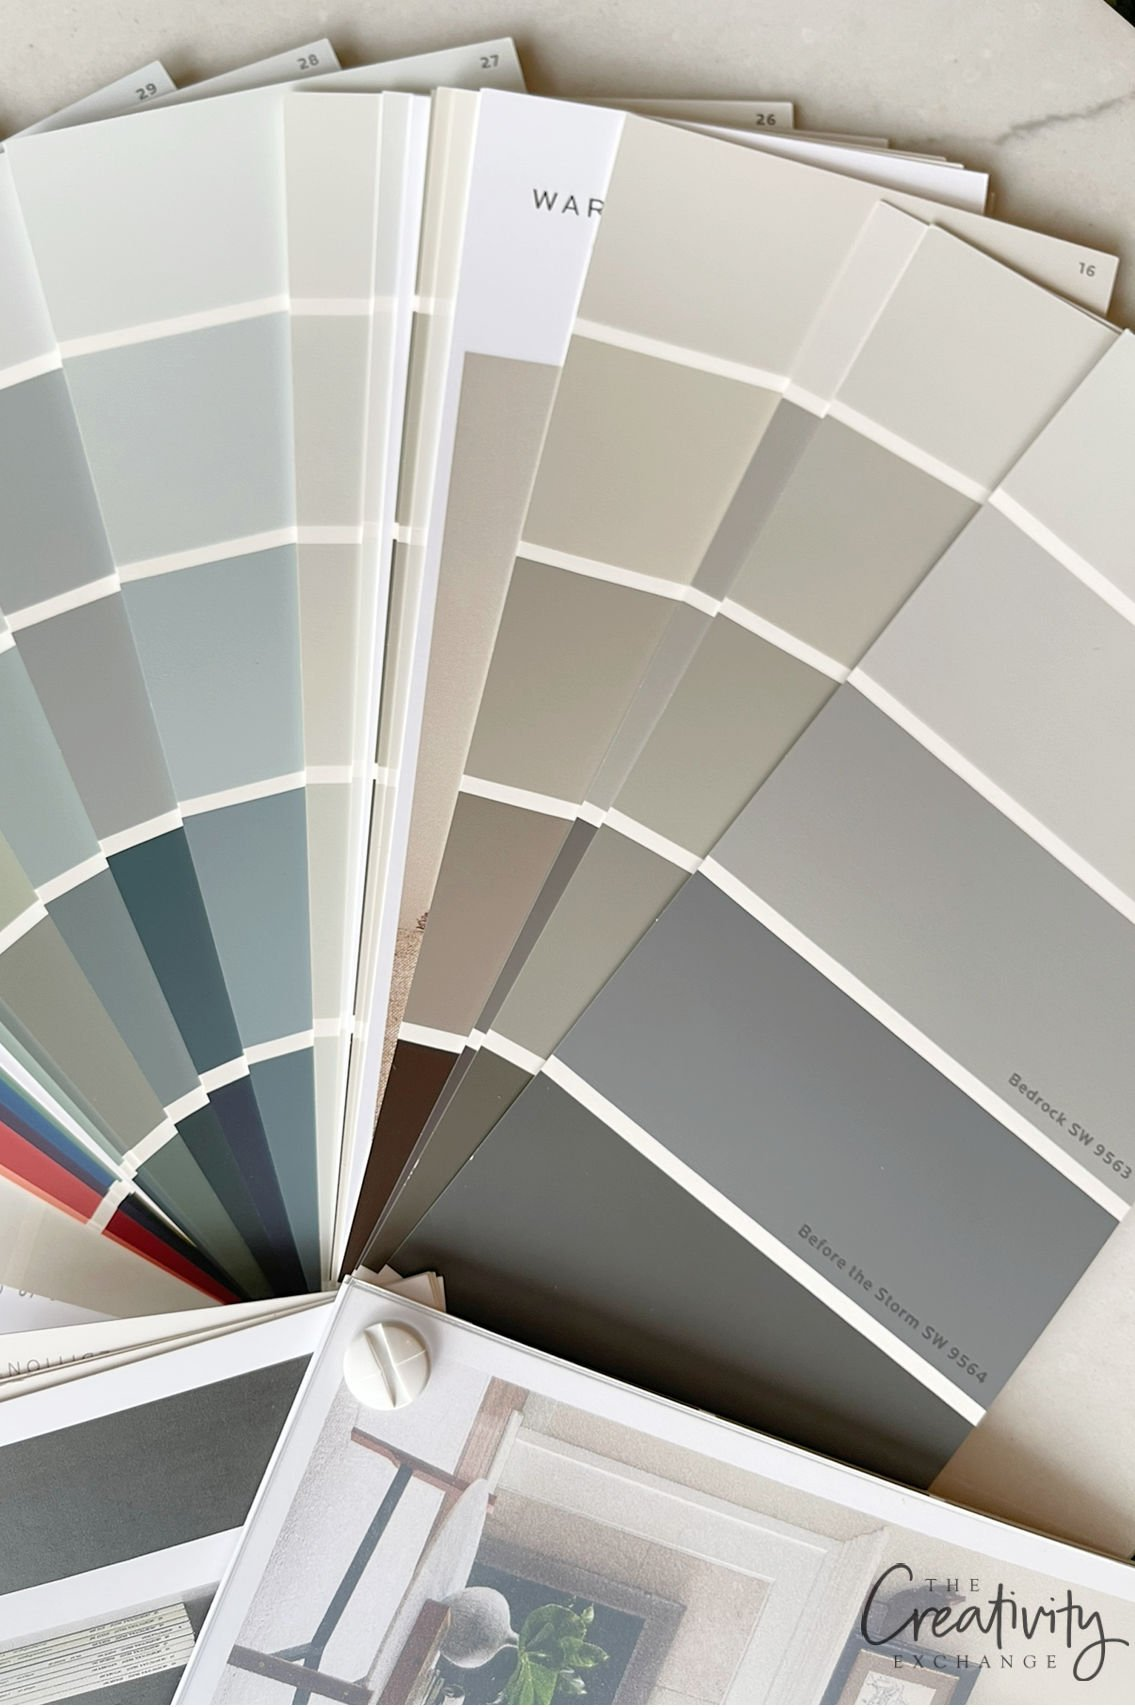 200 New Sherwin Williams Paint Color Collection